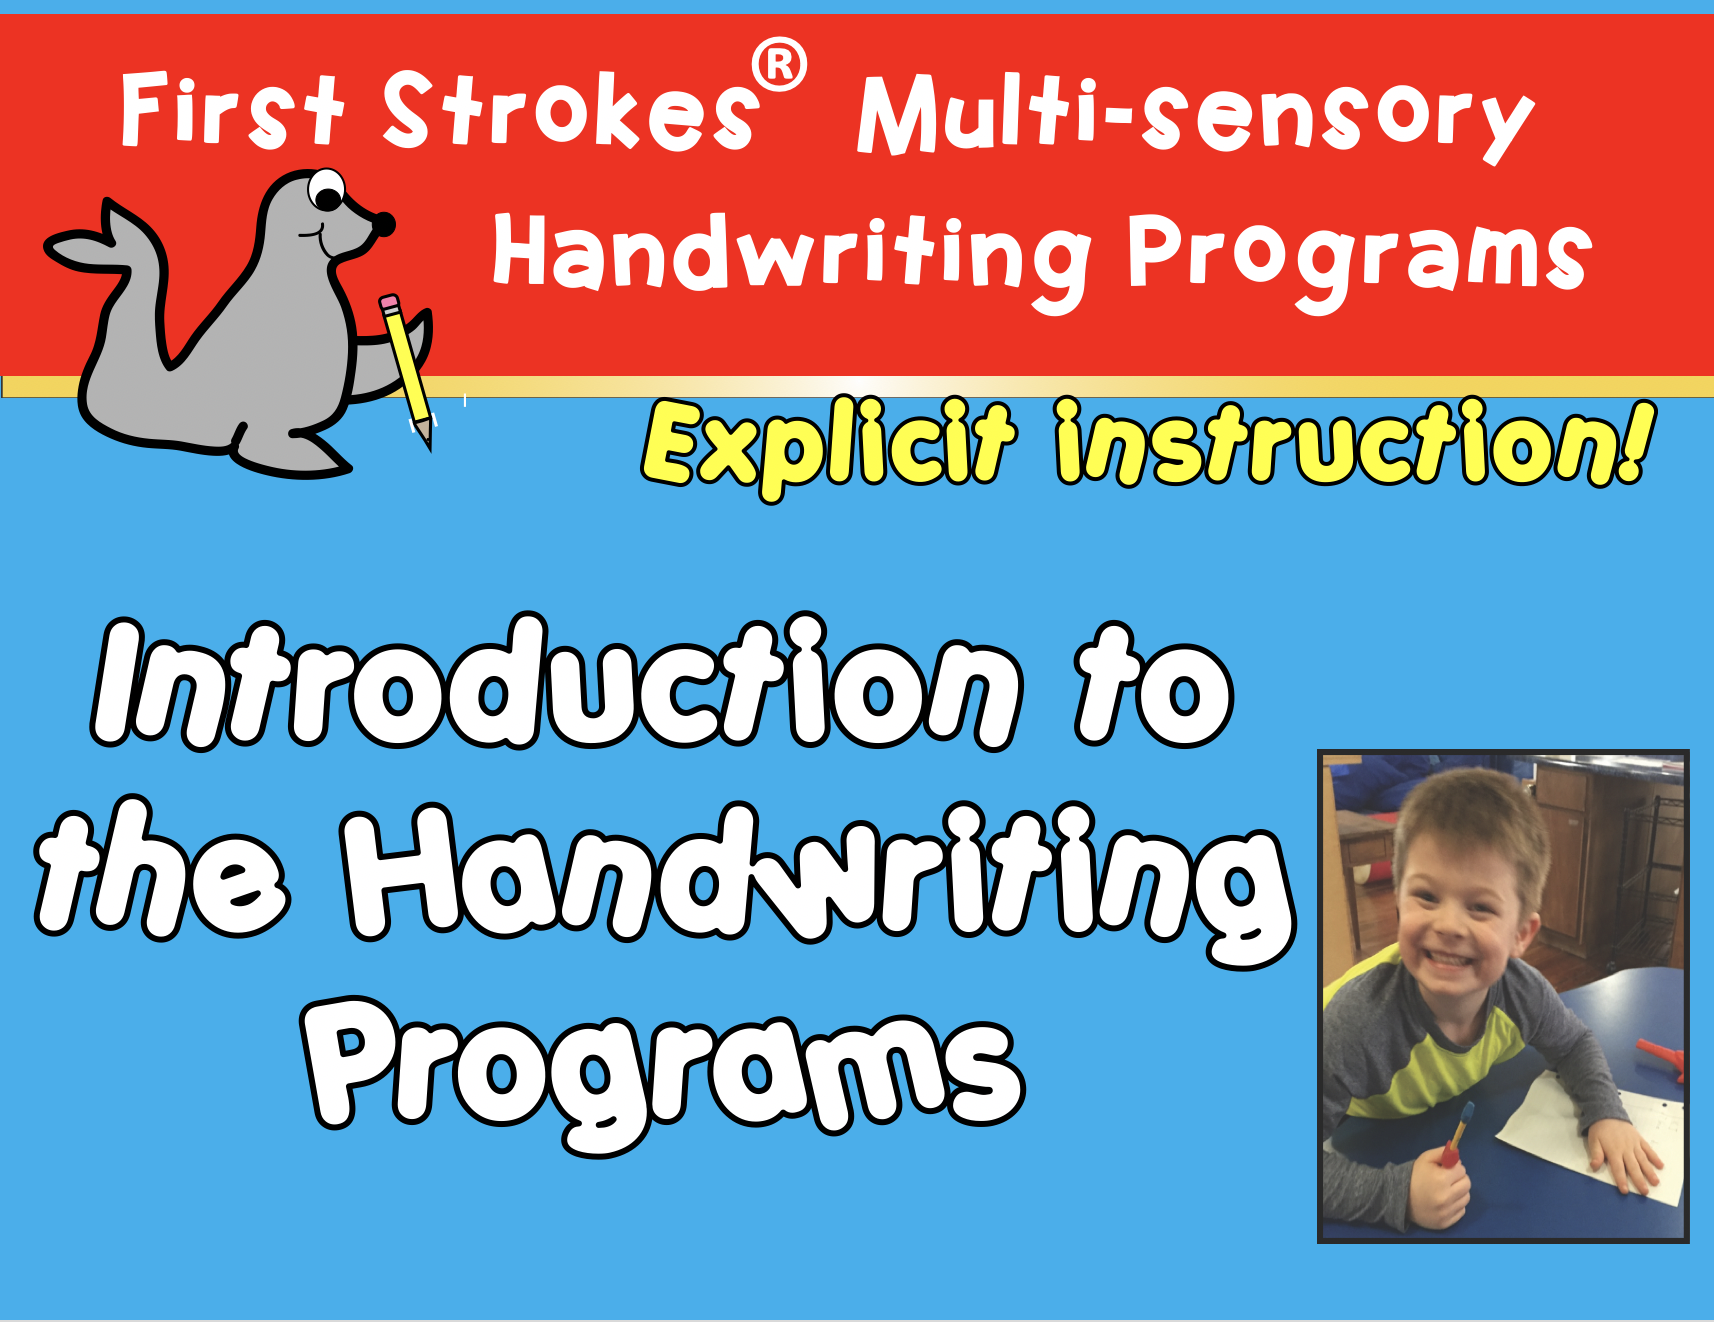 Overview of the First Strokes Handwriting Program